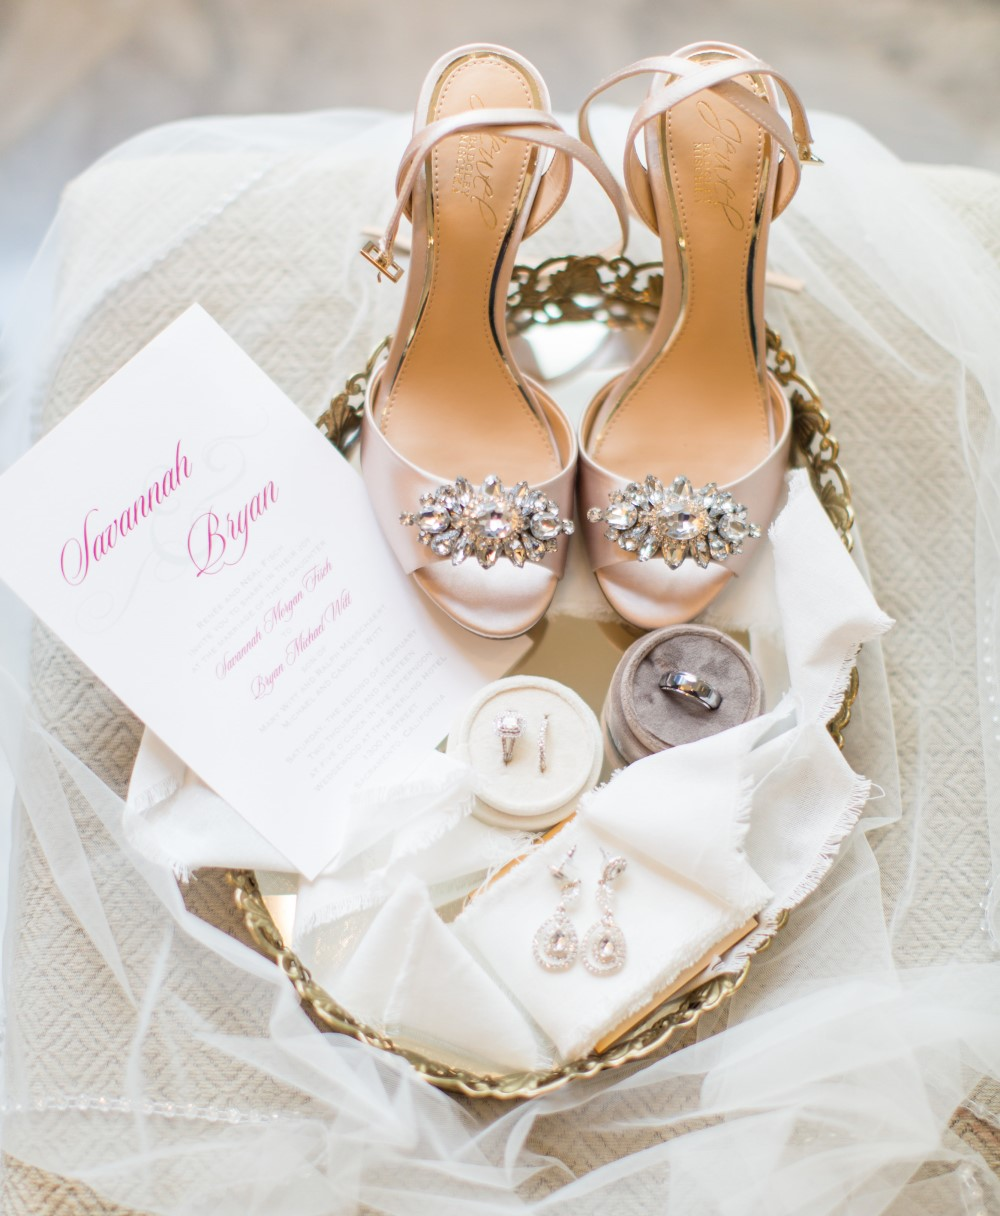 wedding invite, bridal shoes, wedding rings, and accessories